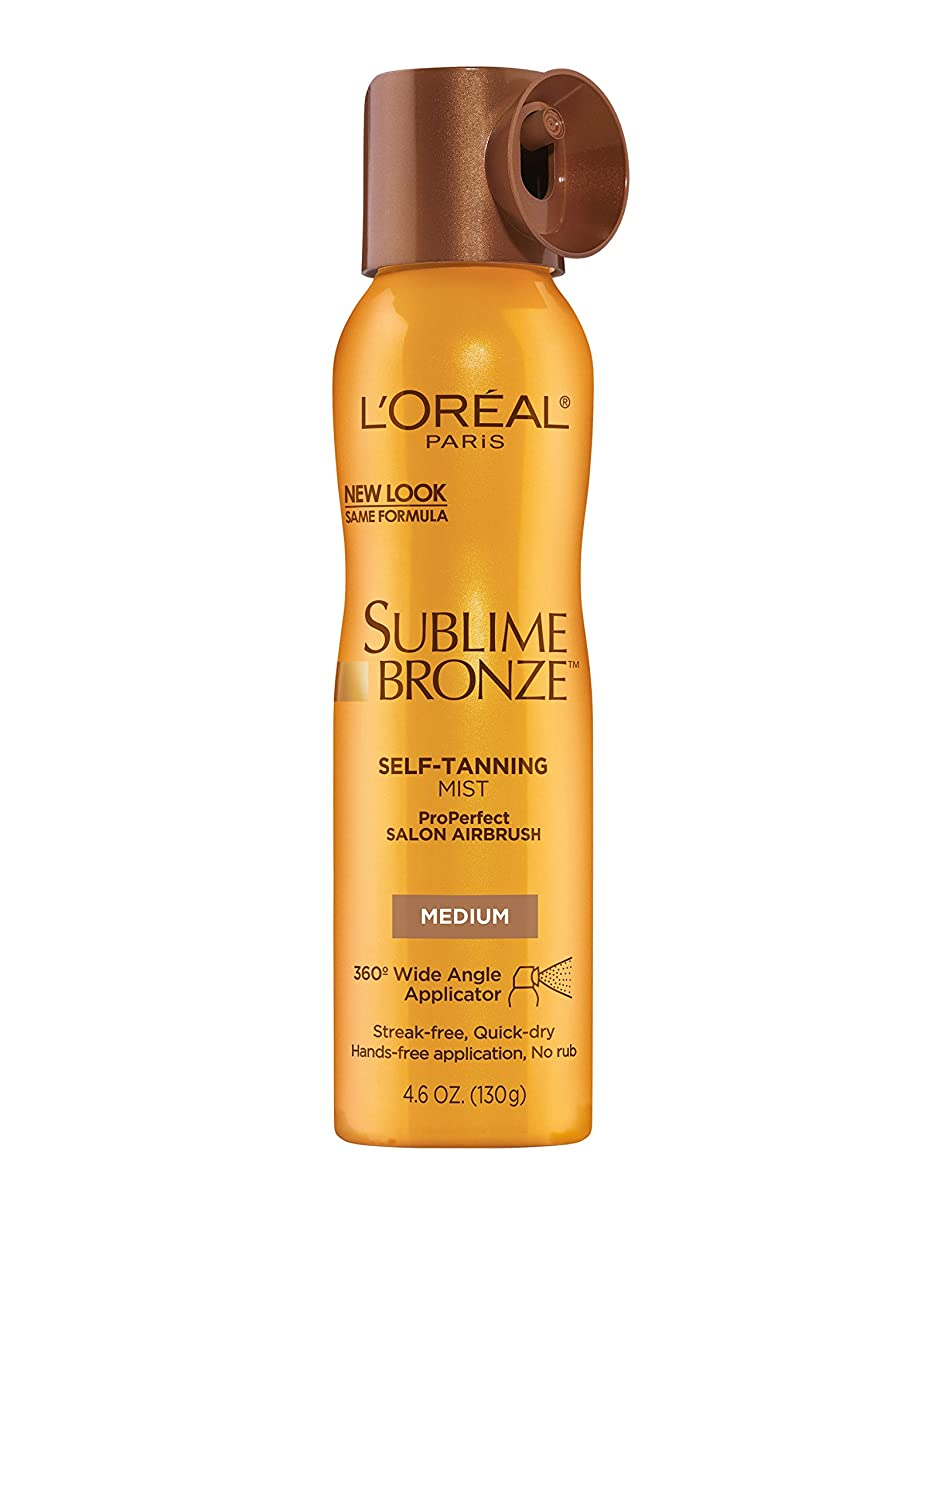 L'Oreal Sublime Bronze ProPerfect Salon Airbrush Self-Tanning Mist, Medium Natural Tan 4.6 oz (130 g L' Oreal K073-74